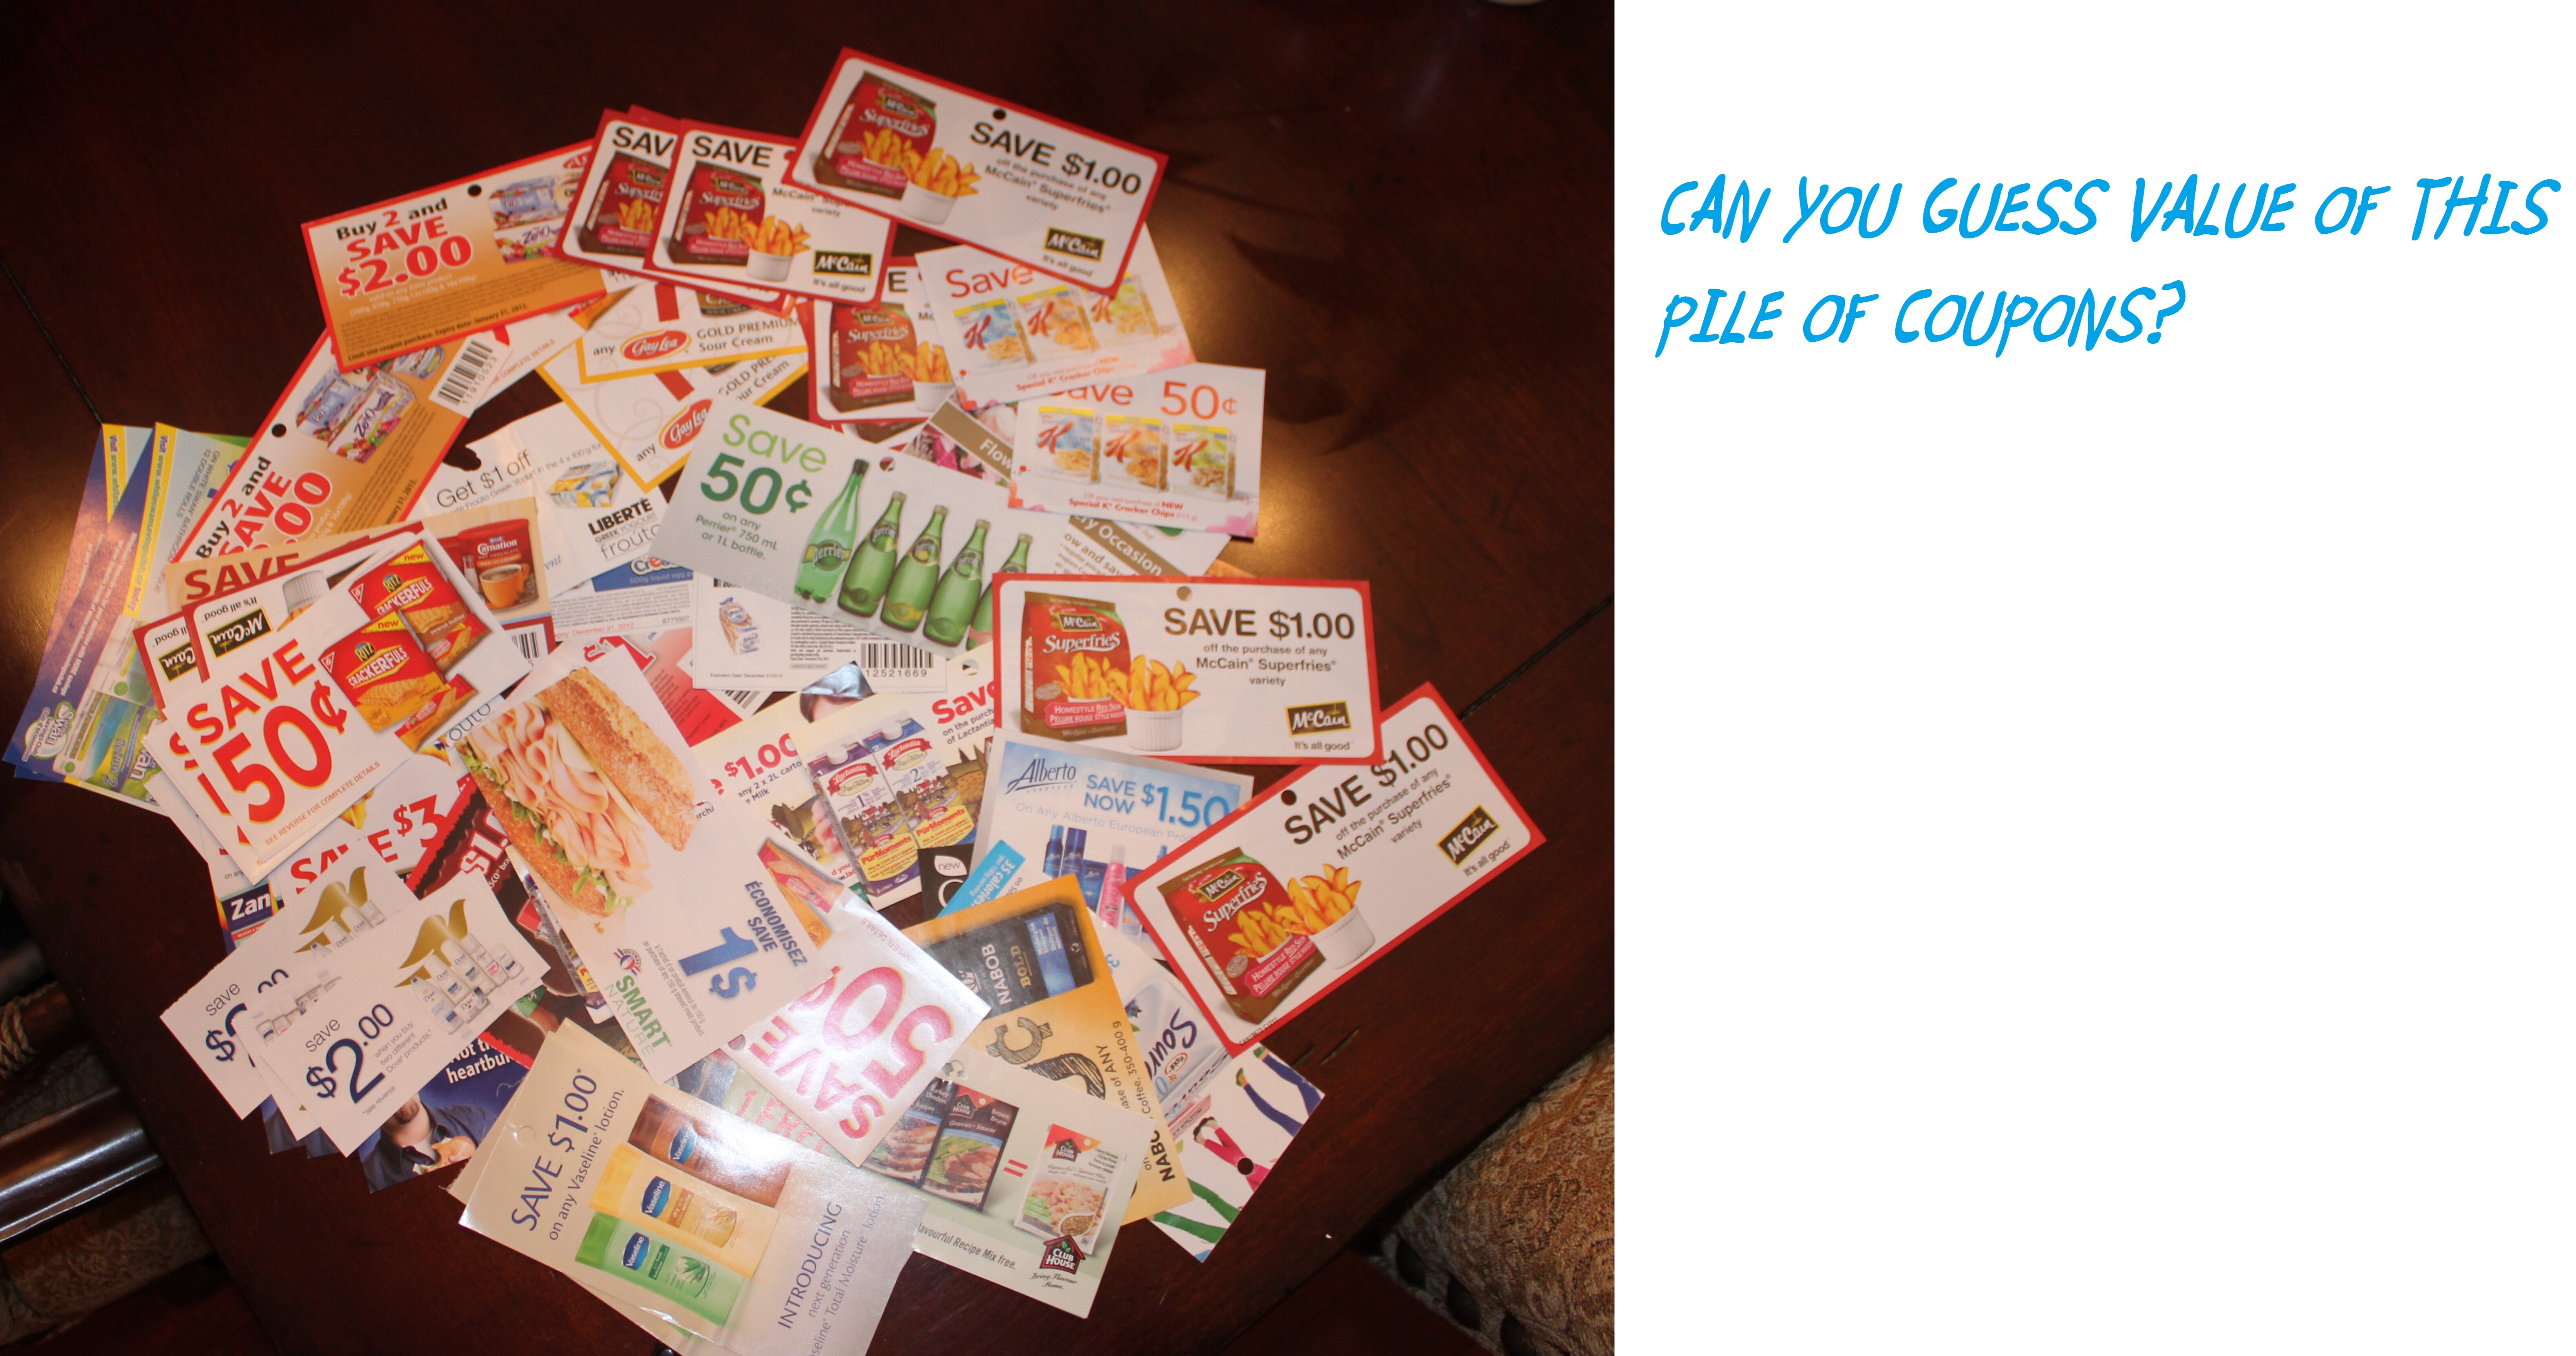 *CONTEST* WINNER ANNOUNCED – Can you GUESS the VALUE of these Coupons in this Pile?